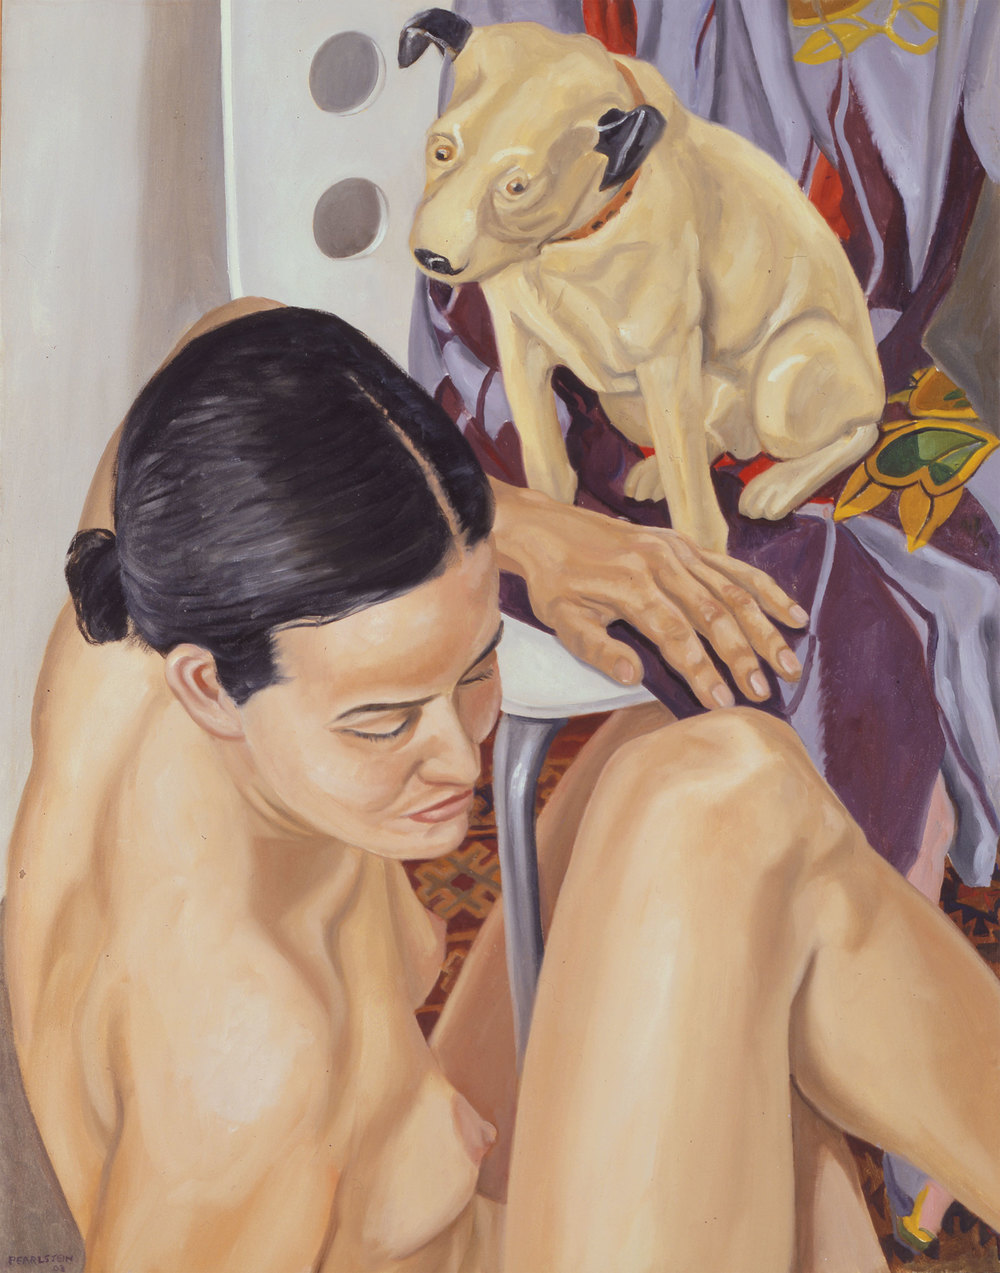 MODEL WITH HIS MASTER'S VOICE DOG , 2003 Oil on canvas 34 1/4 x 26 5/8 inches